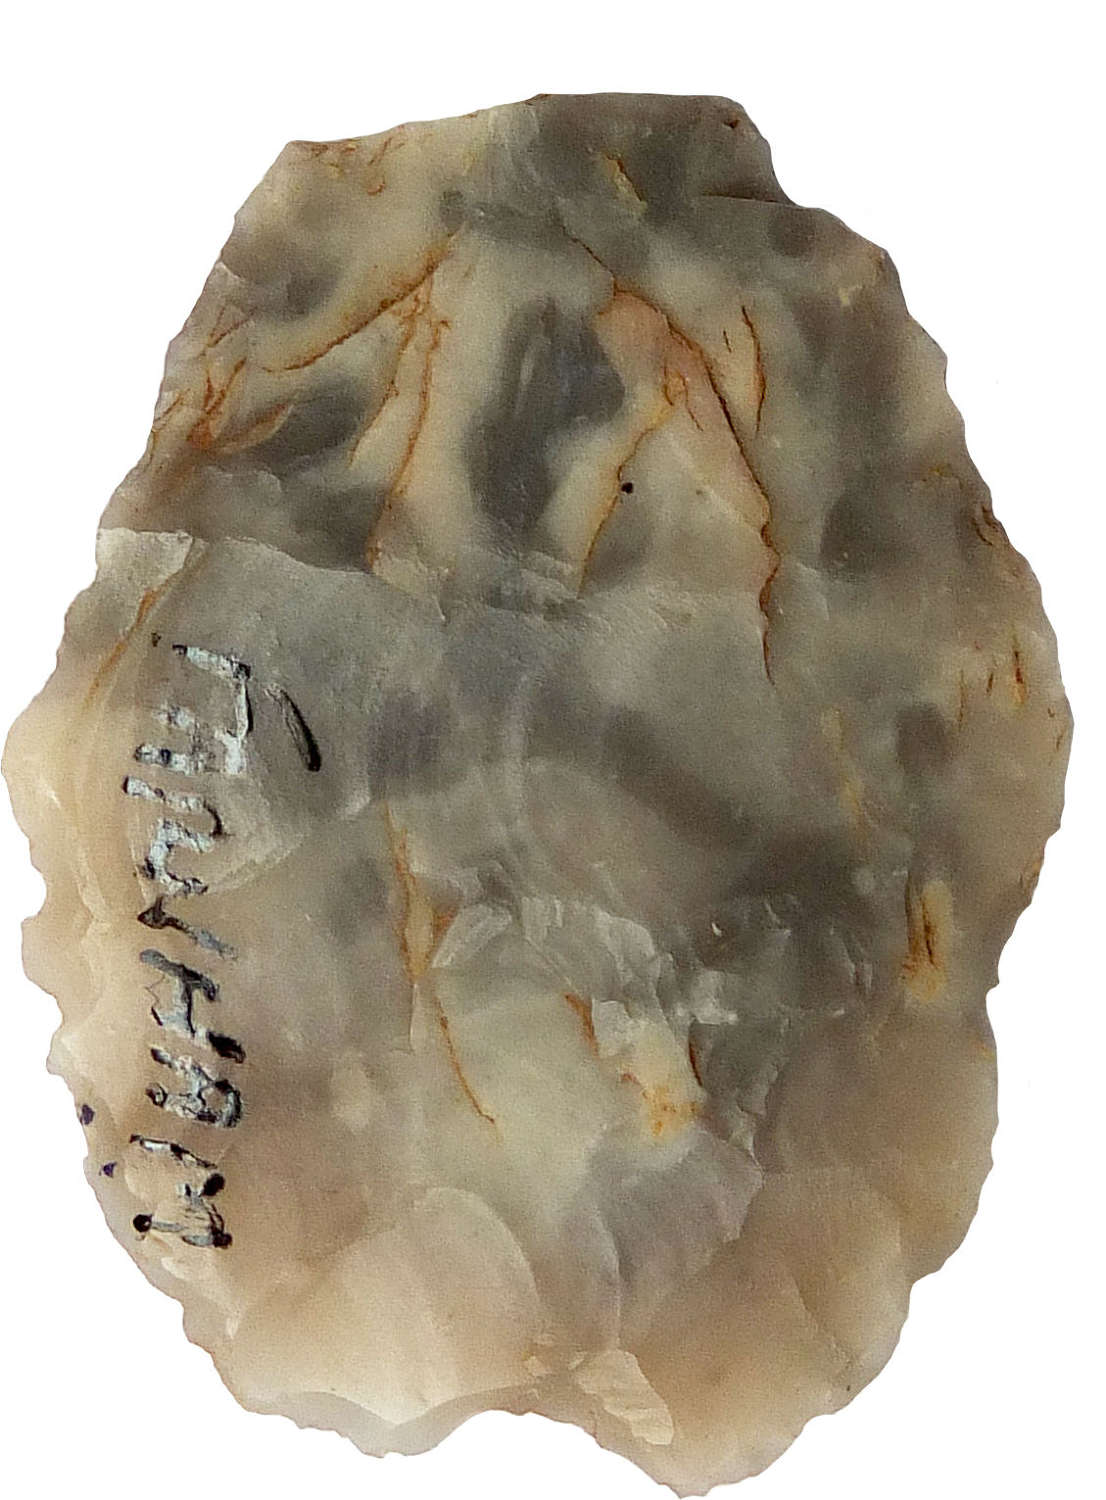 An Early Neolithic flint arrowhead found at Farnham, Surrey